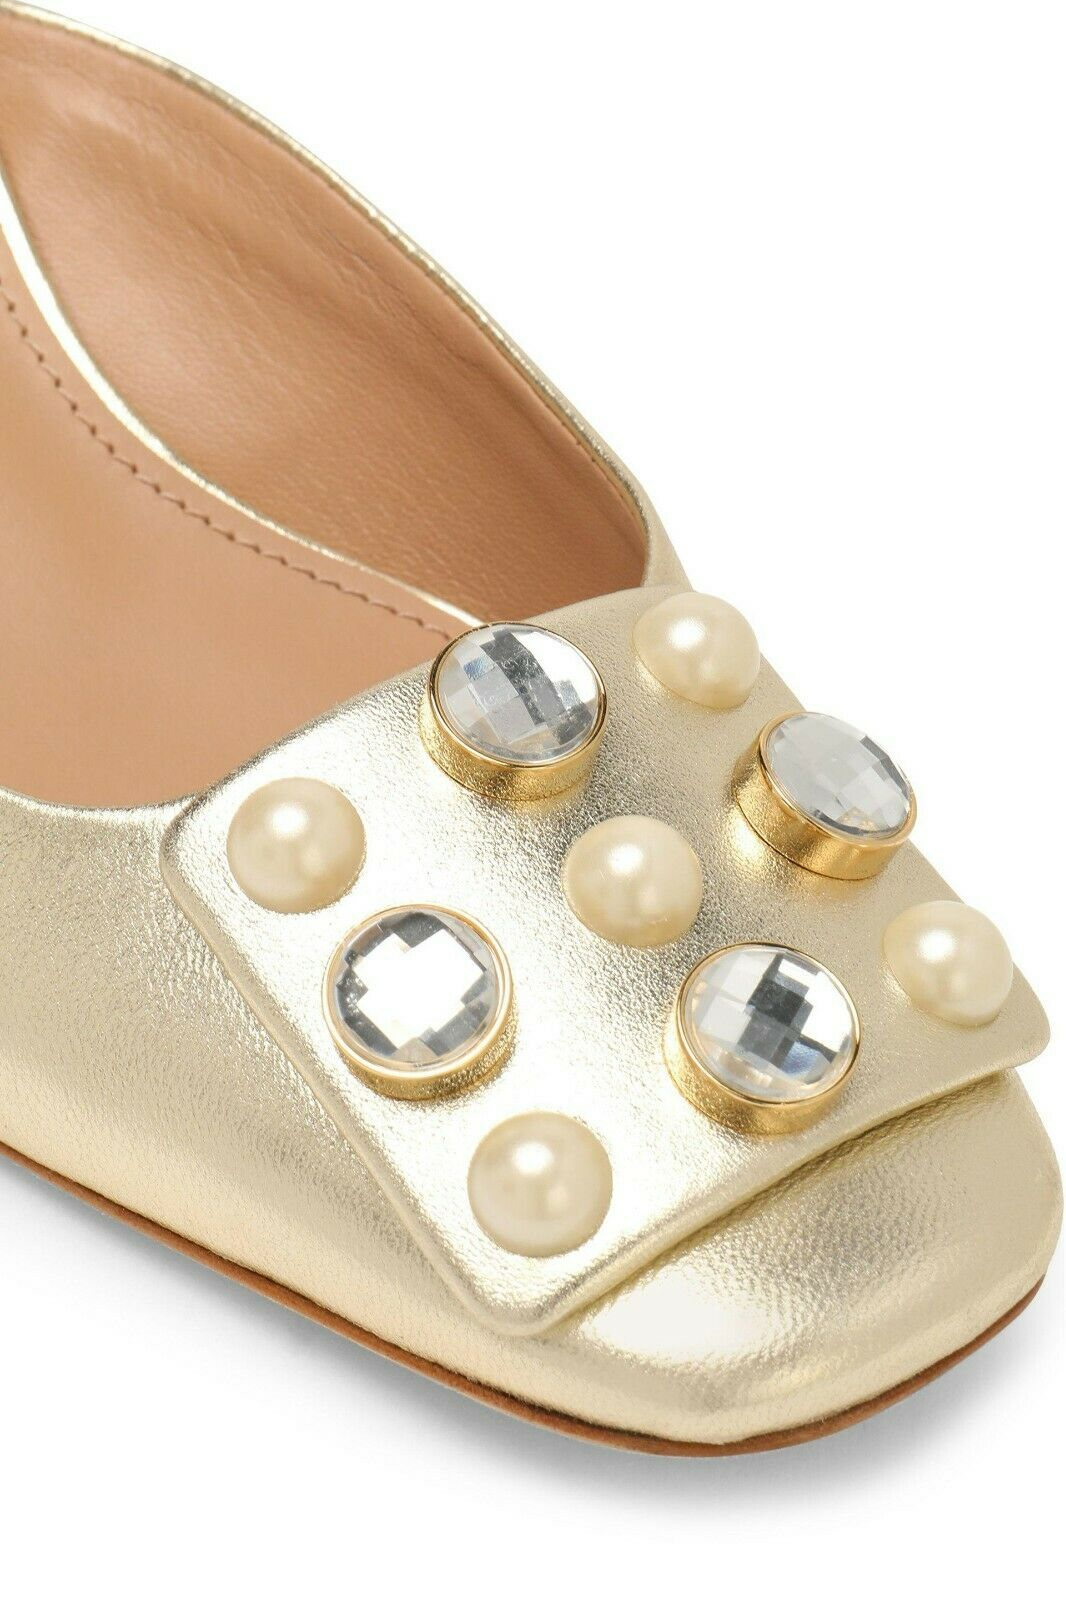 Tory Burch VAIL gold Leather Crystals Pear Mules Low Heel Slides Sandals  6.5